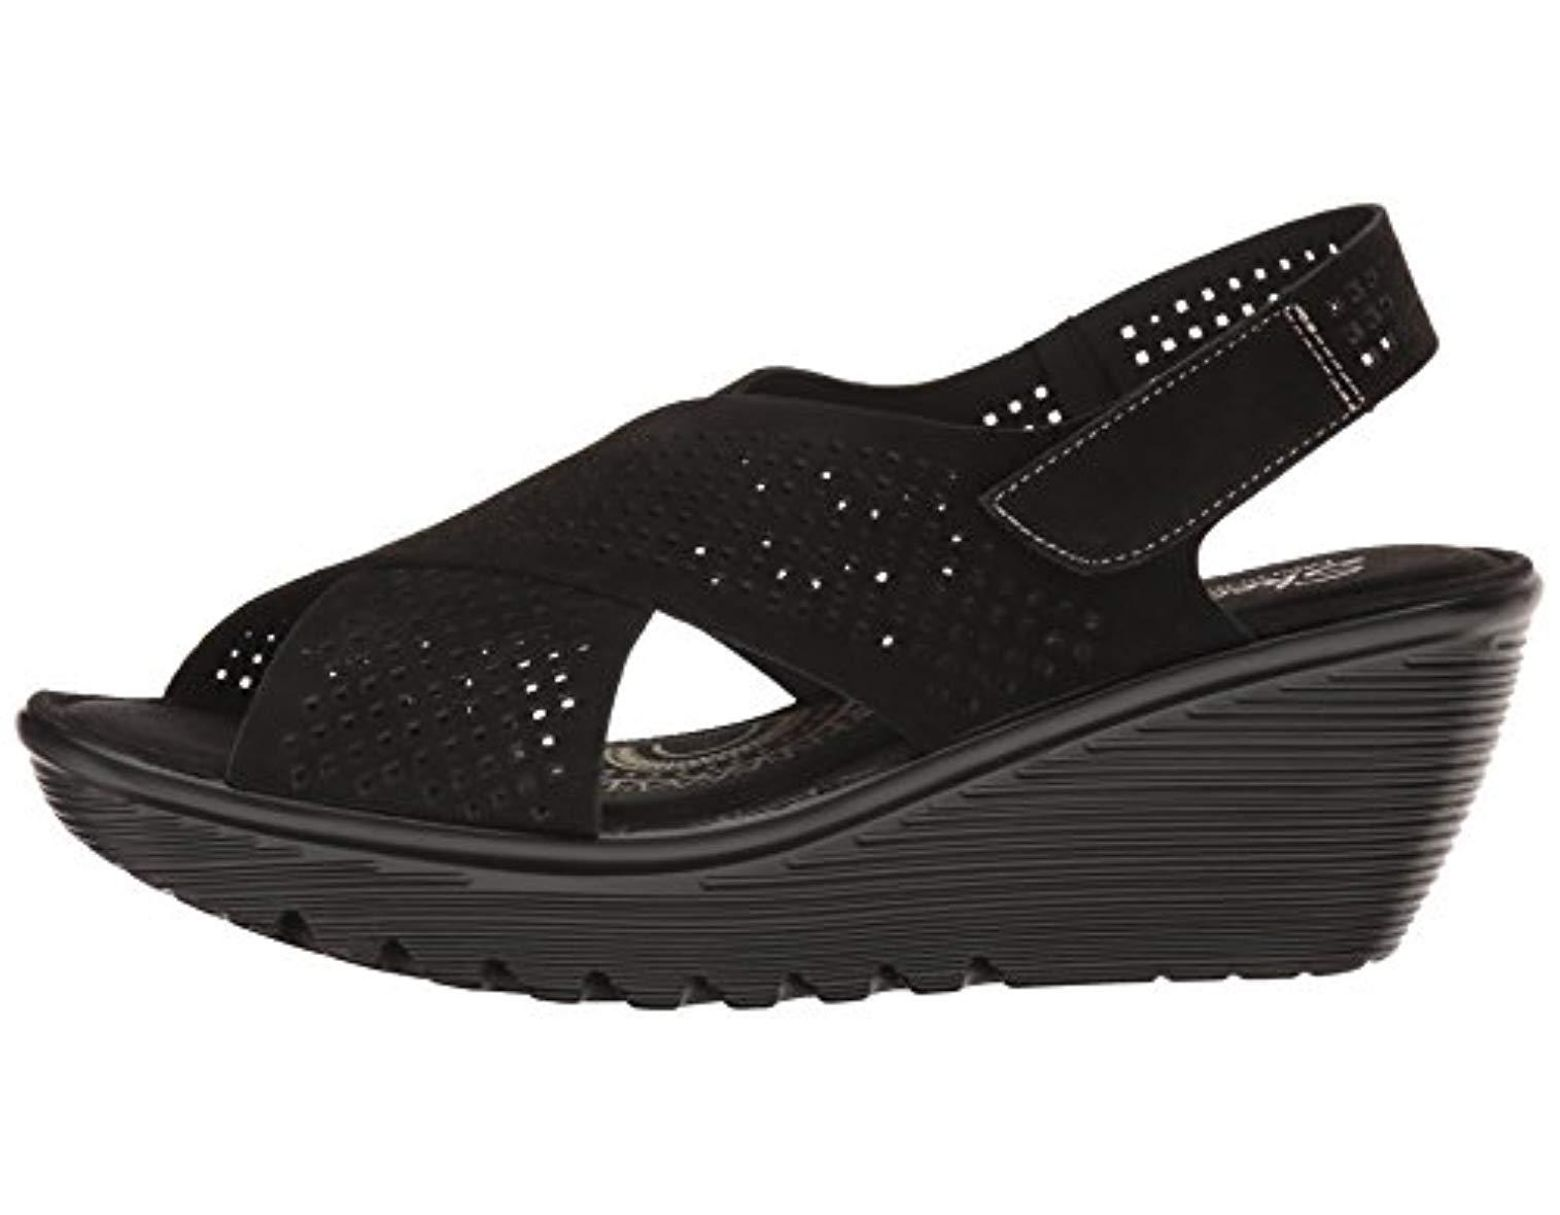 e35101de7f Skechers Parallel Infrastructure Wedge Sandal in Black - Save 29% - Lyst